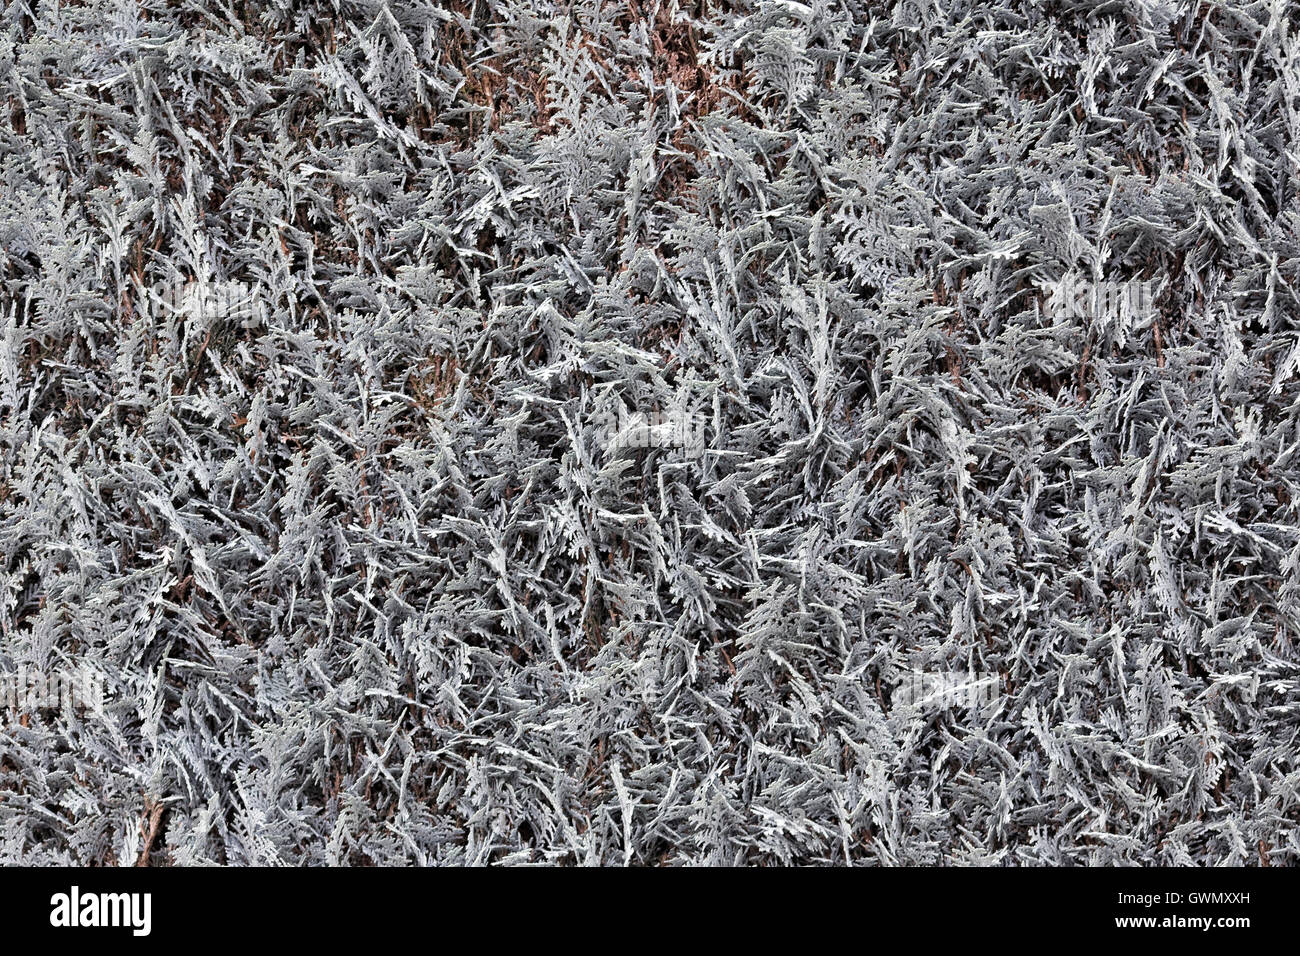 Silver grey hedge texture. - Stock Image